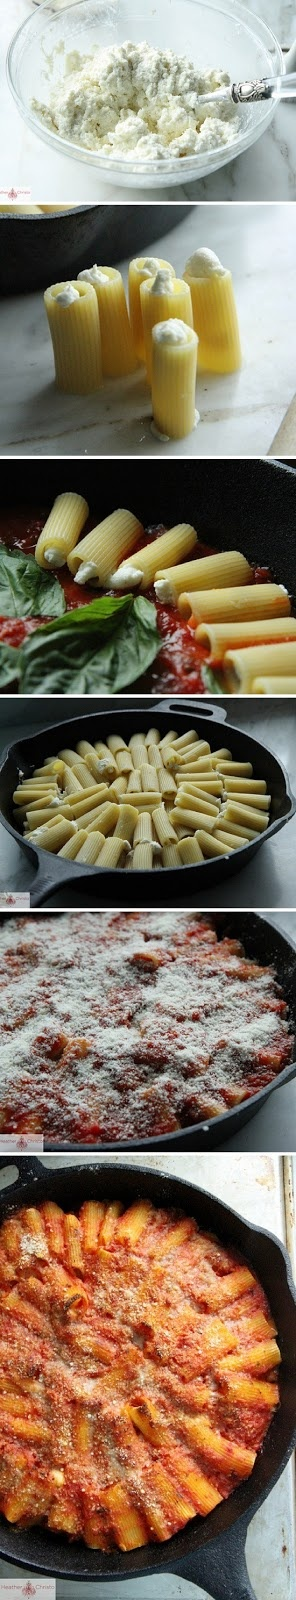 17 Best images about Pasta & Rigatoni on Pinterest | Skillets, Cheese ...